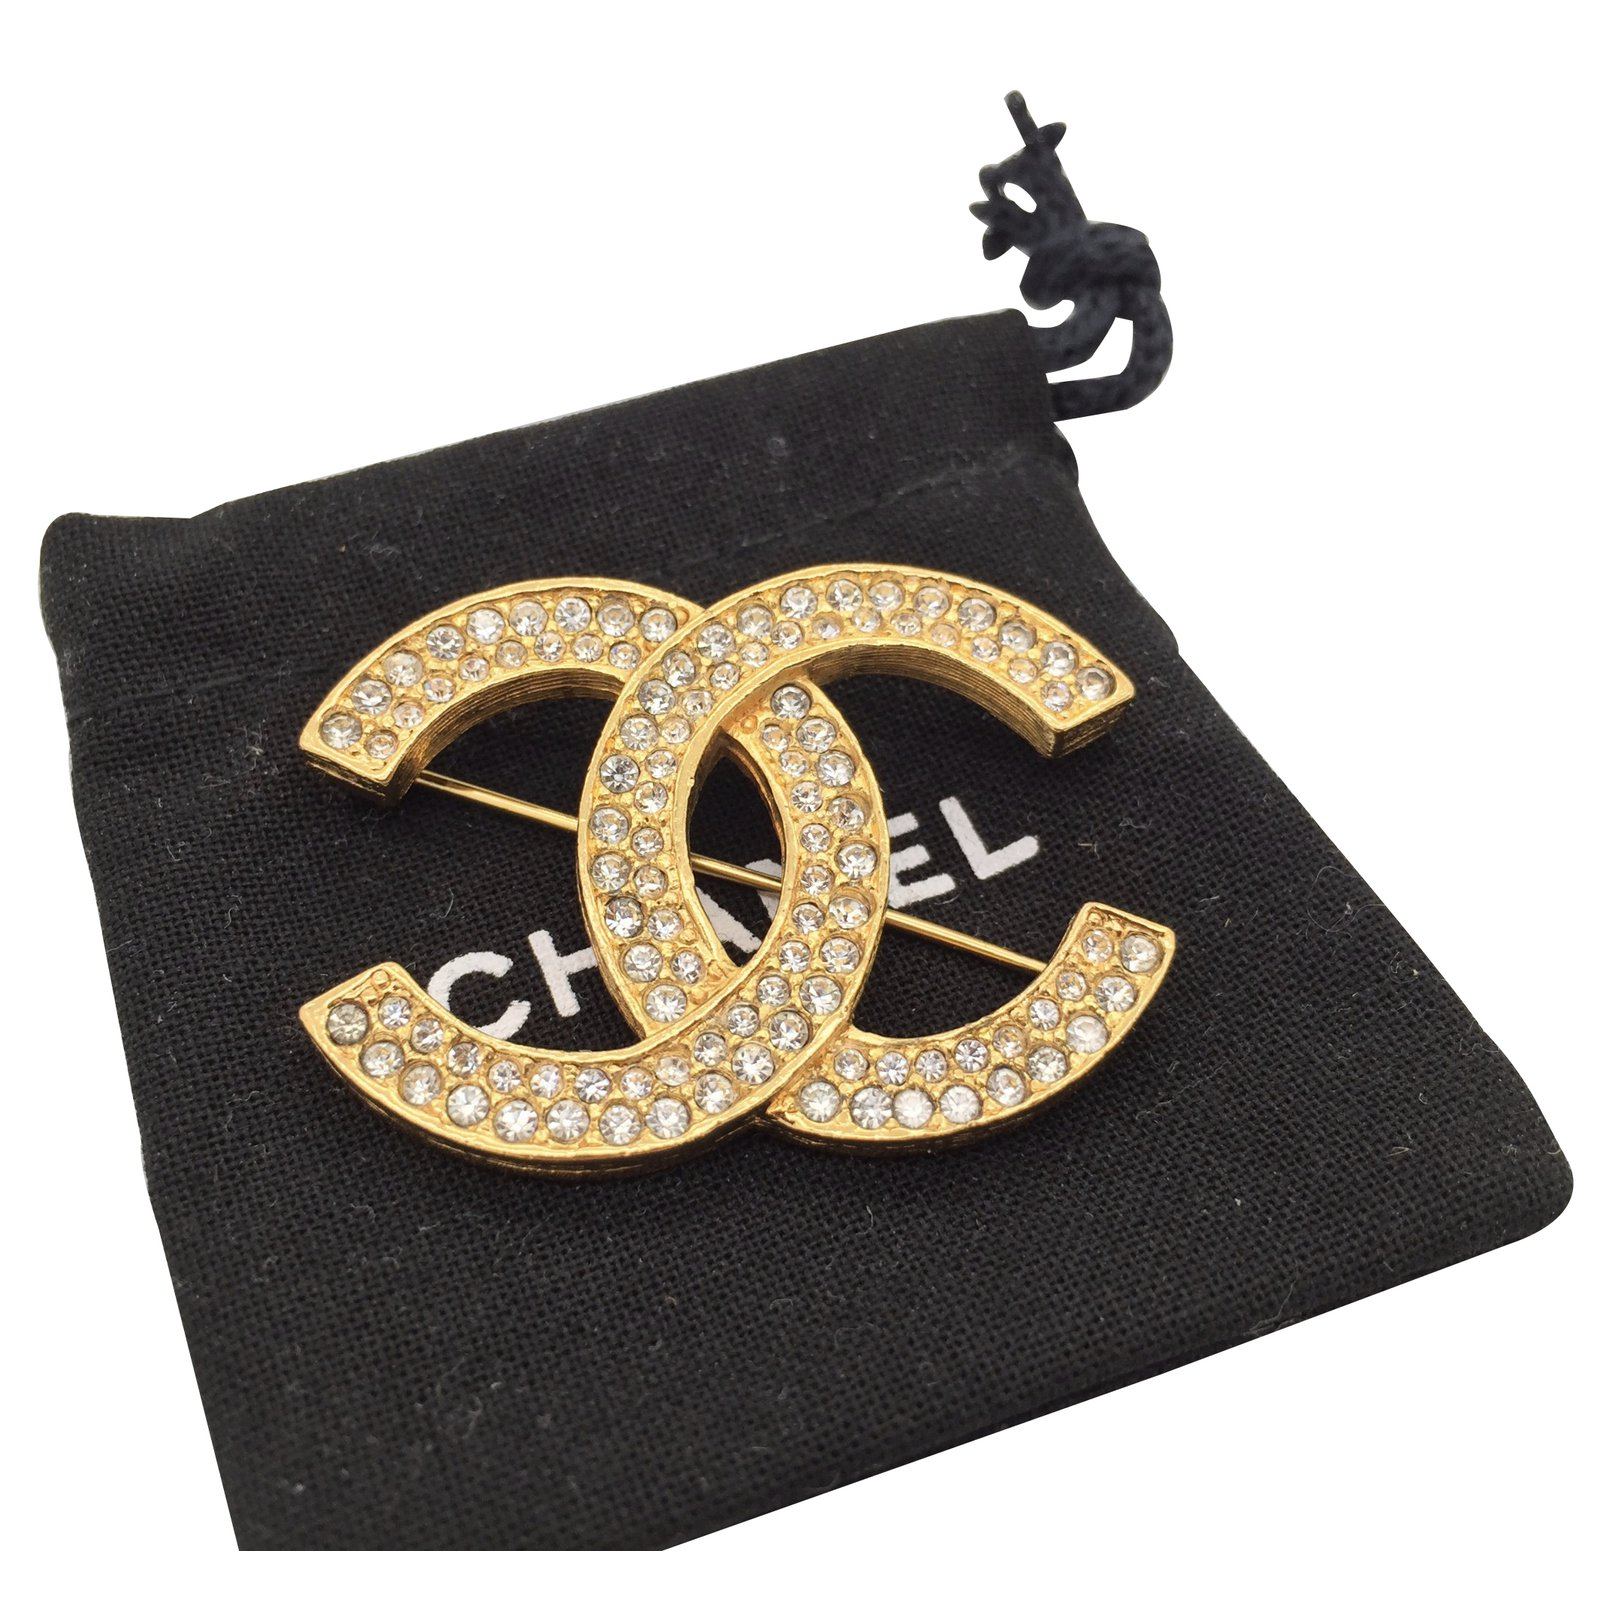 fashion costume metal en ca default brooch silver jewelry chanel strass products crystal packshot brooches